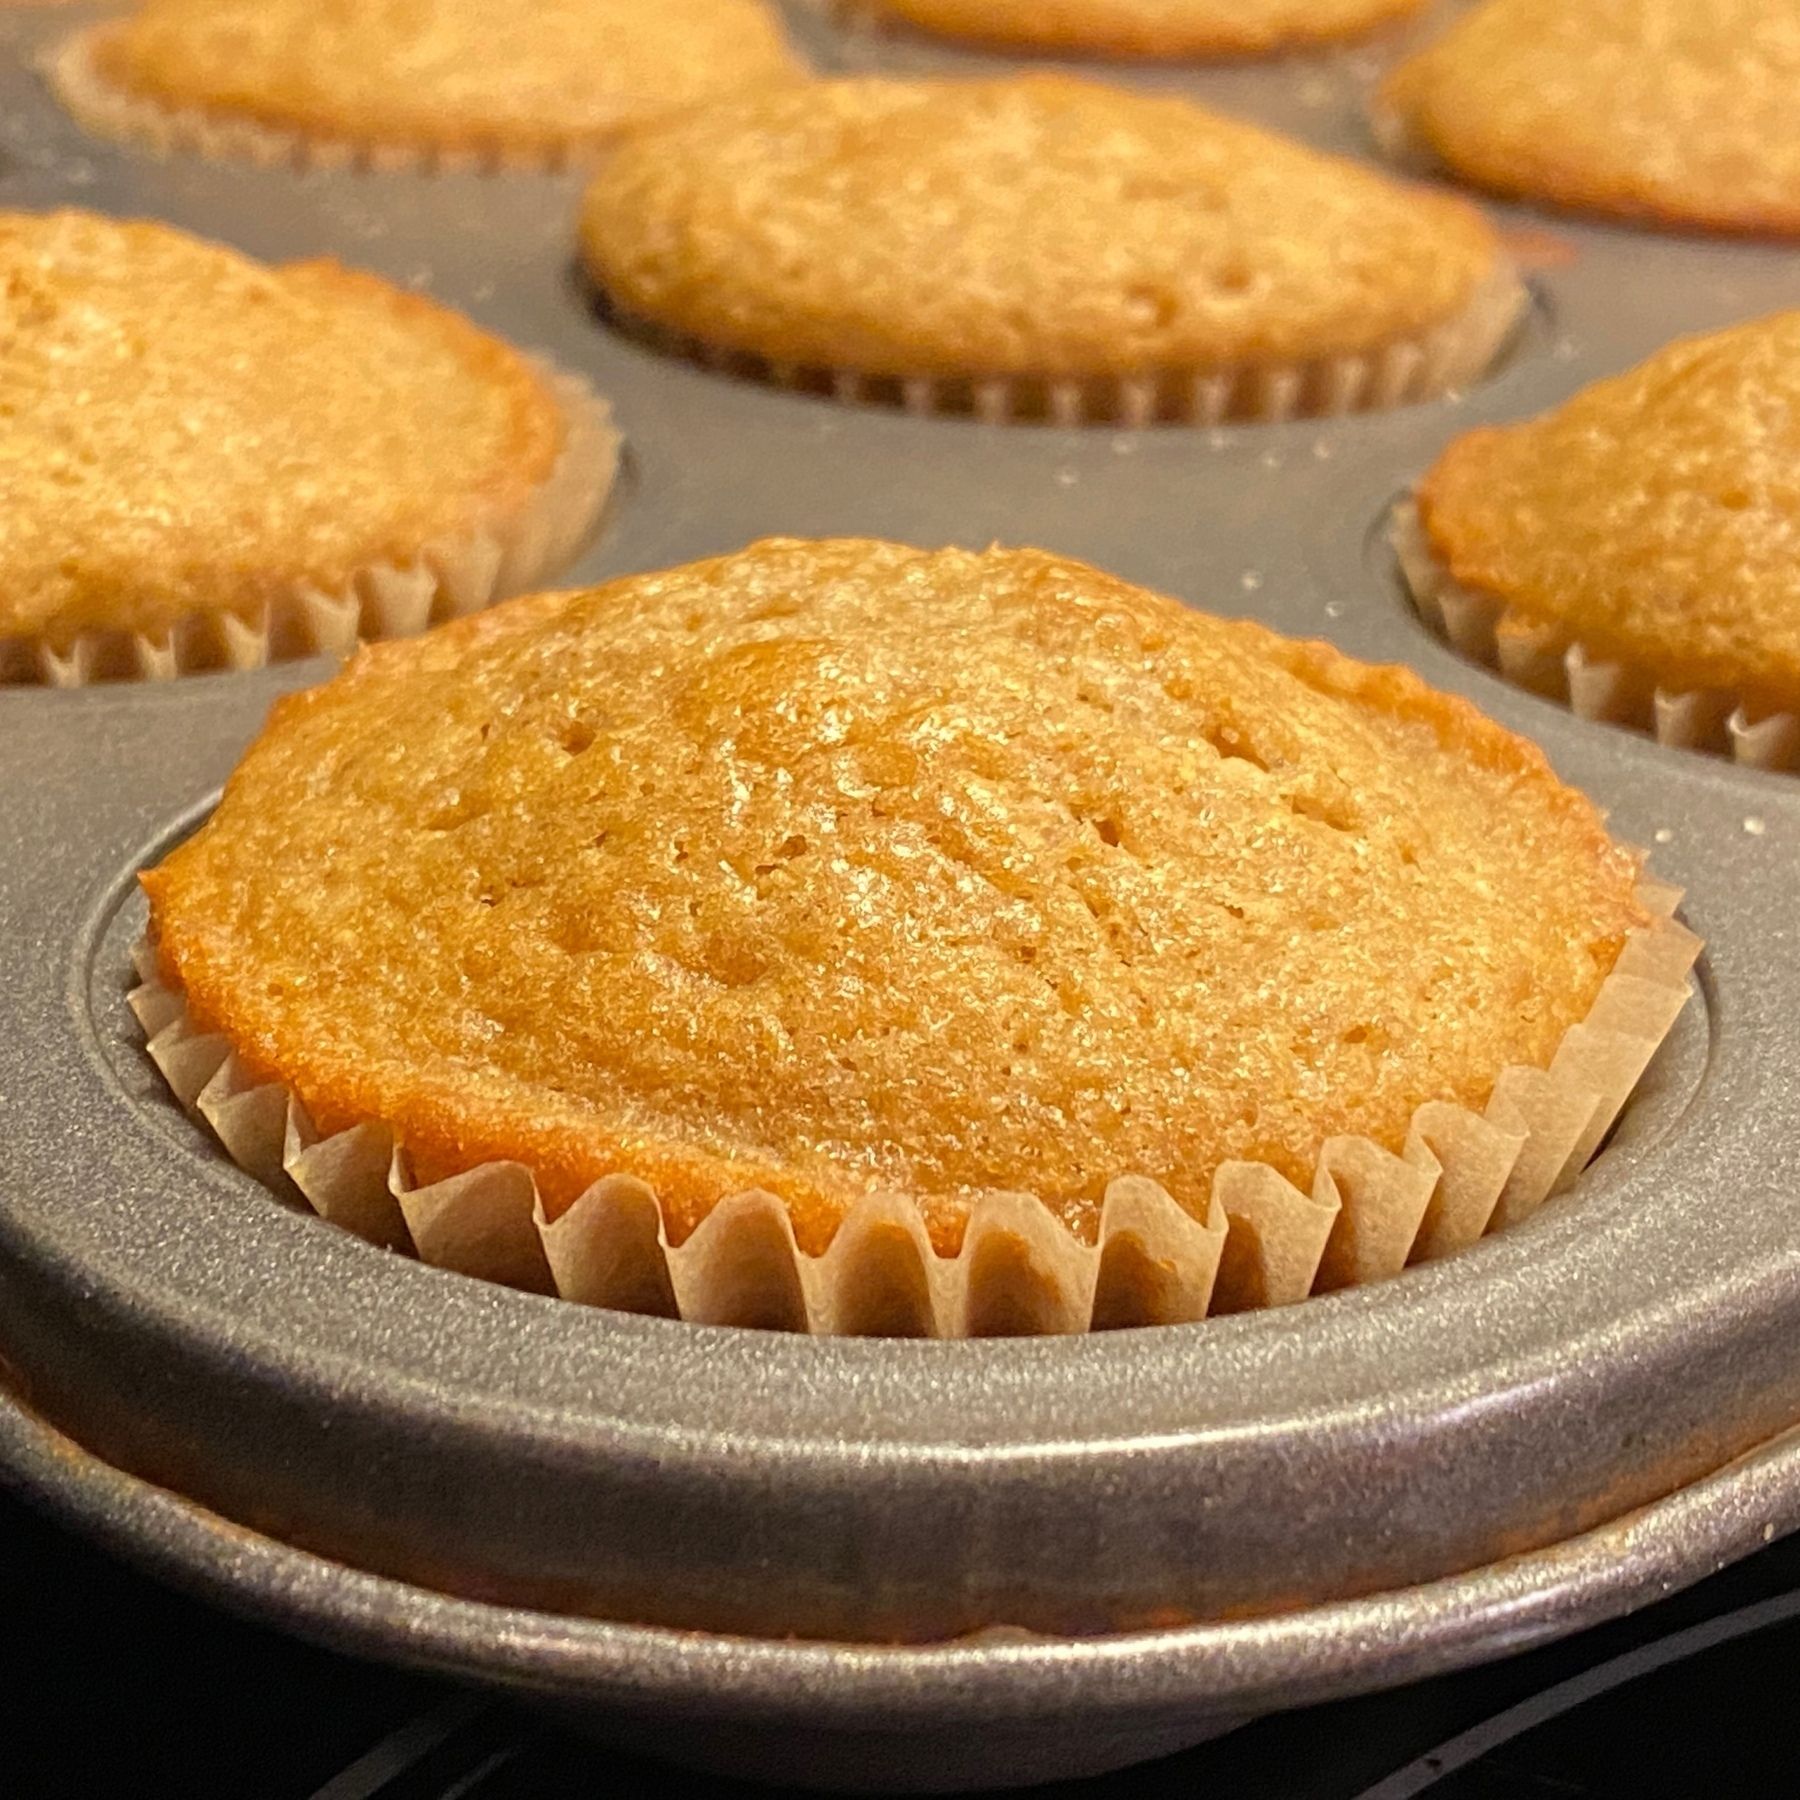 Muffins in pan.